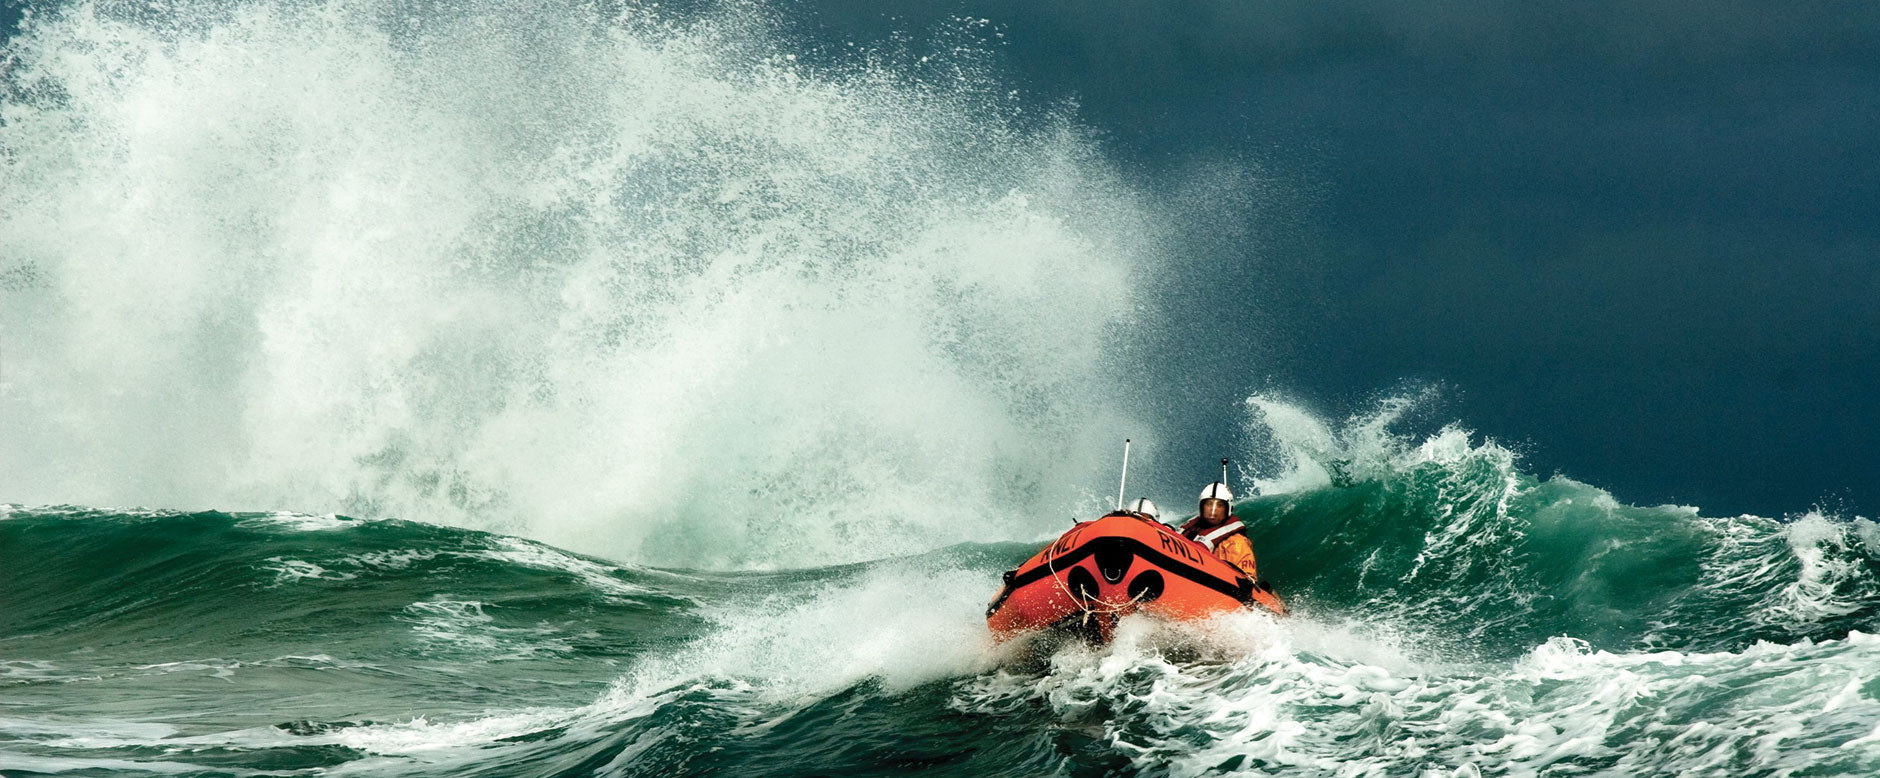 RNLI Lifeboats accepts bitcoin donations